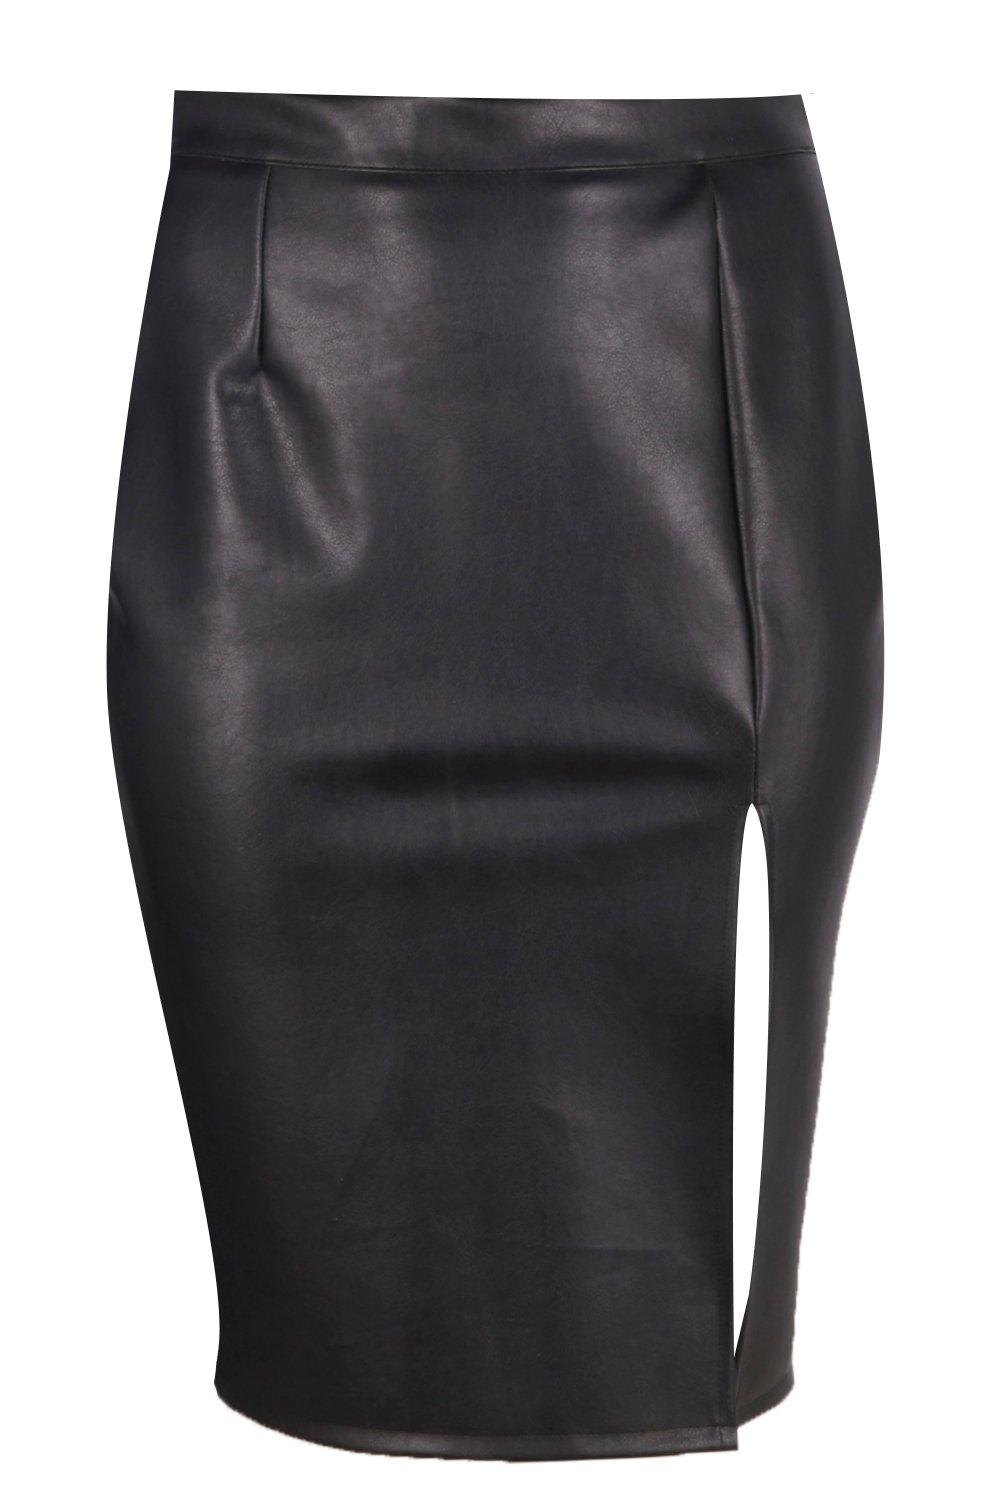 Plus Yas Leather Look Midi Skirt at boohoo.com